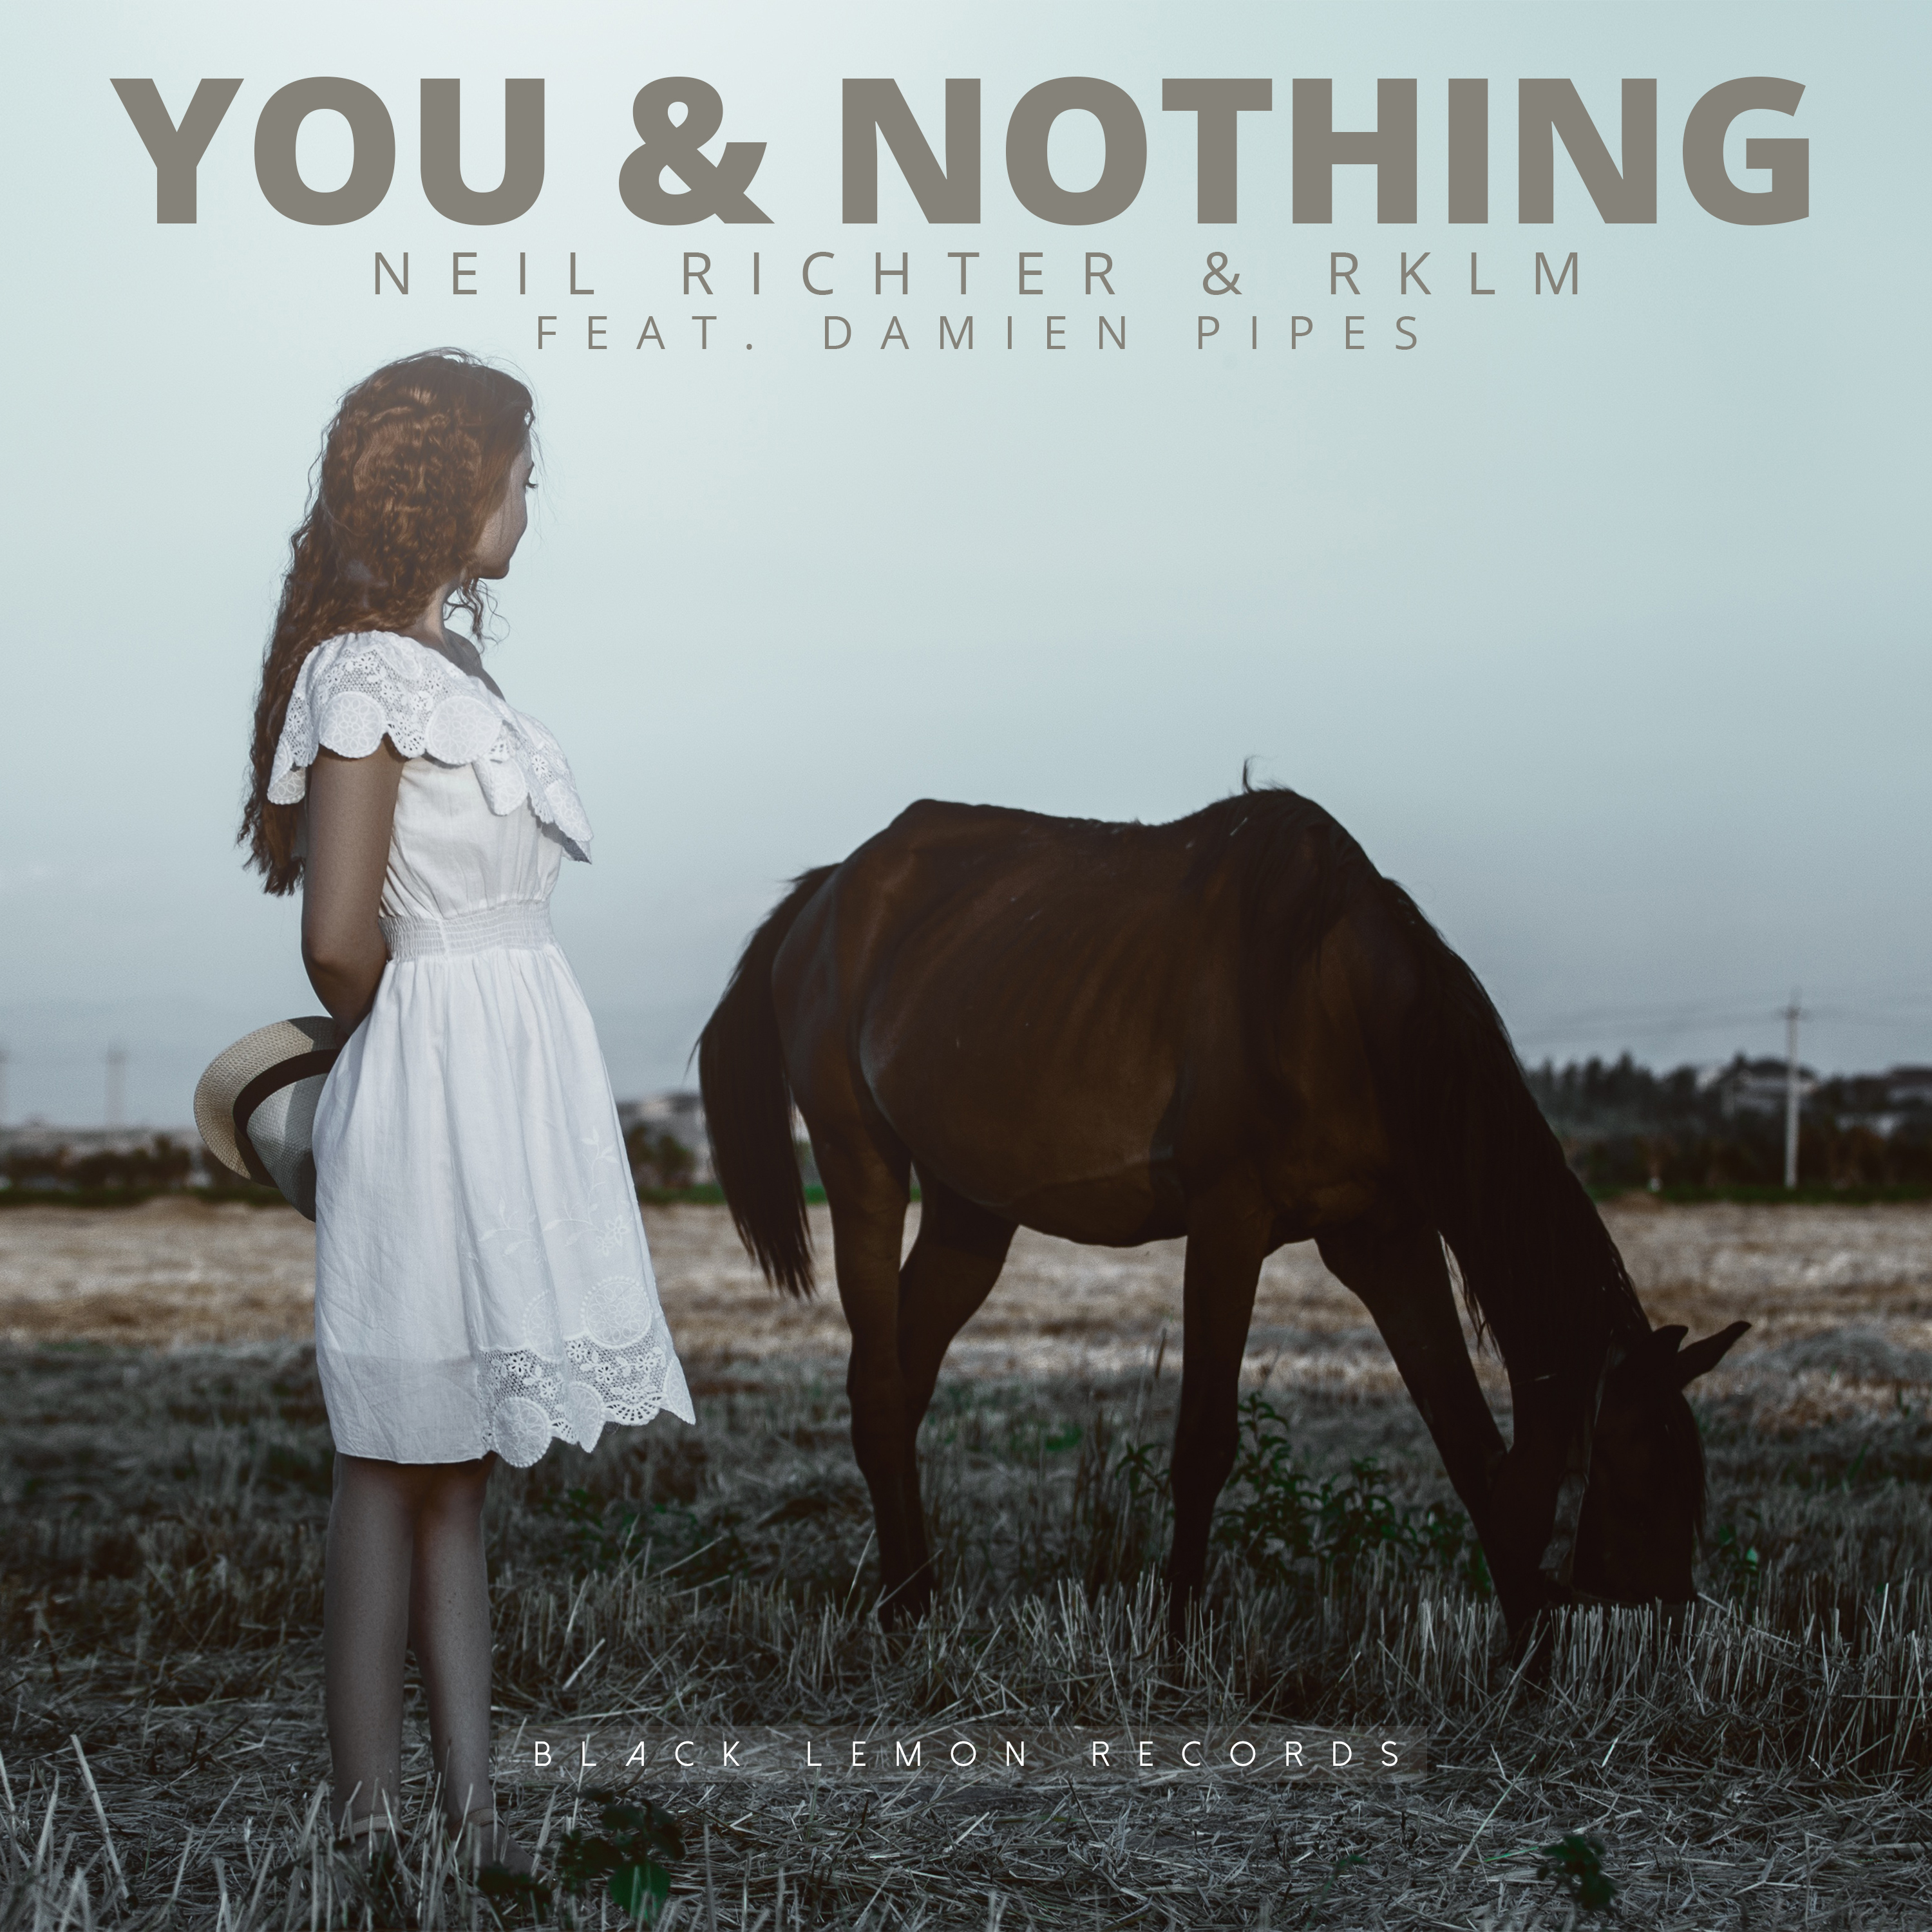 NEIL RICHTER & RKLM FEAT. DAMIEN PIPES-You & Nothing